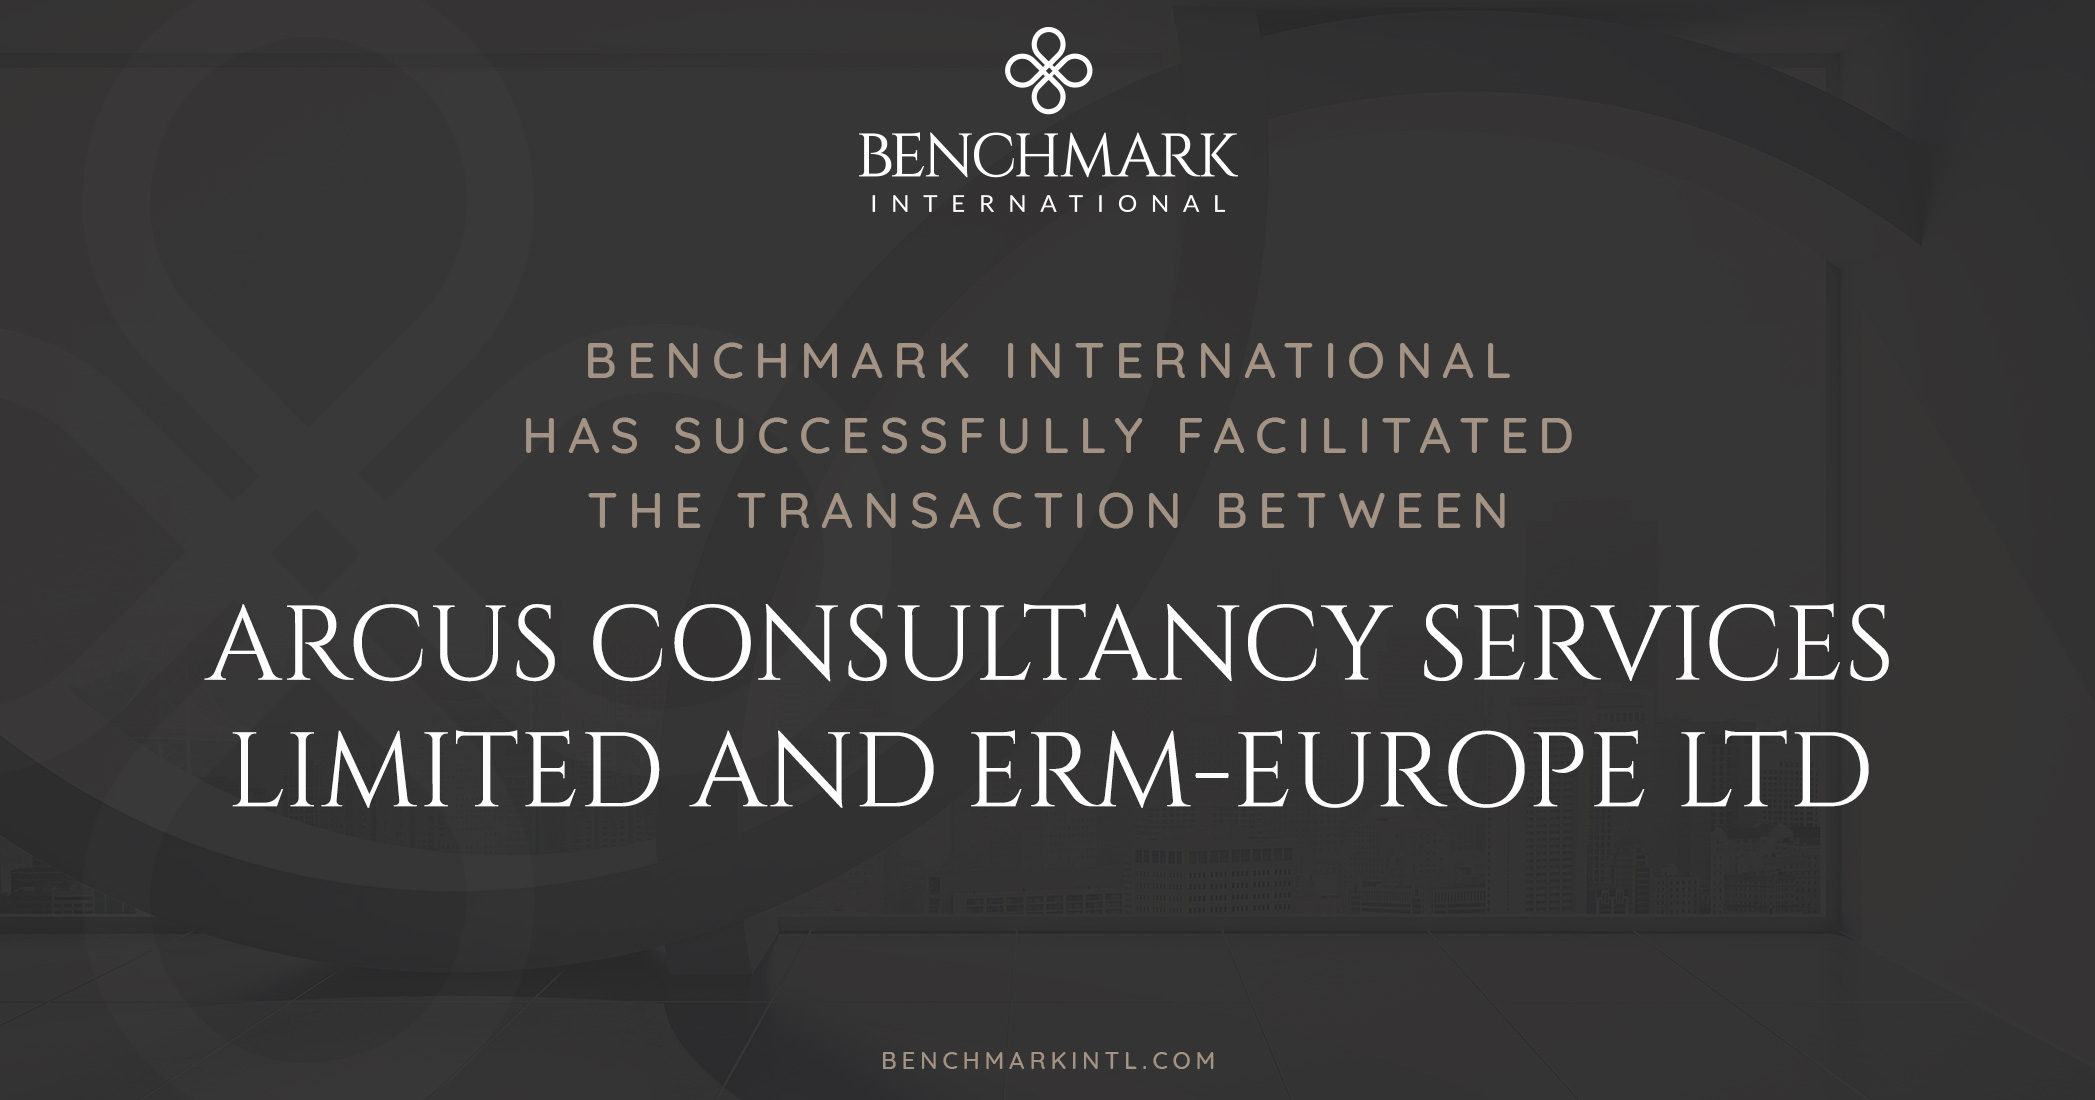 Benchmark International Successfully Facilitated the Transaction Between Arcus Consultancy Services Limited and ERM-Europe Ltd